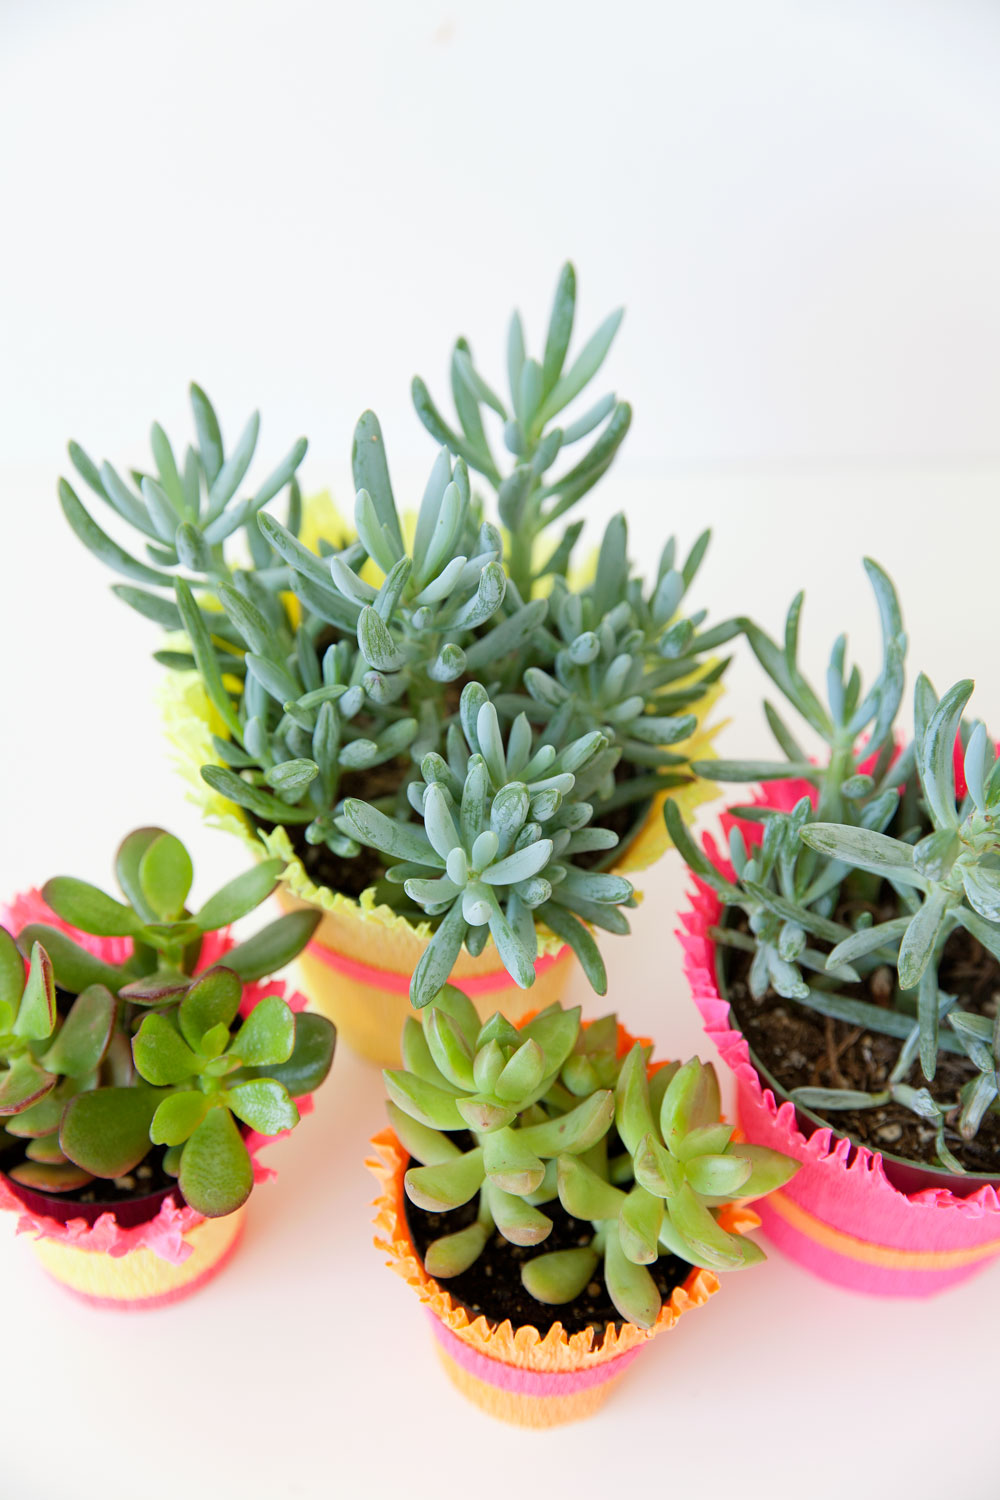 A-fun-and-easy-centerpiece-idea-using-crepe-paper-and-succulents